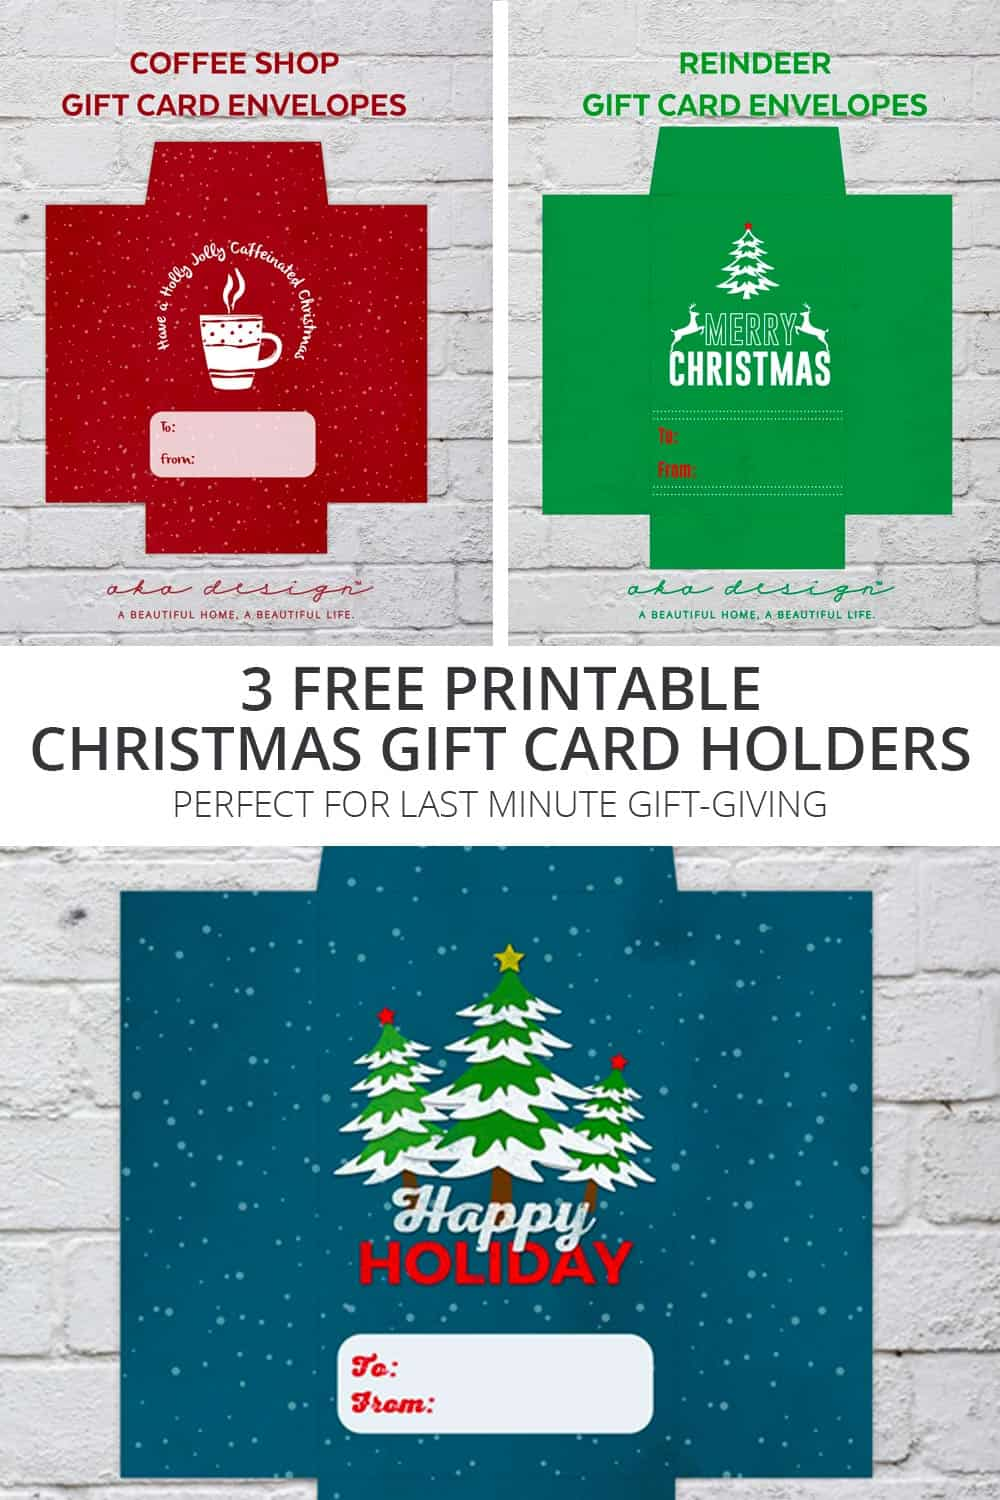 photograph relating to Christmas Envelopes Free Printable identify 3 Totally free Printable Xmas Present Card Holders - For Remaining